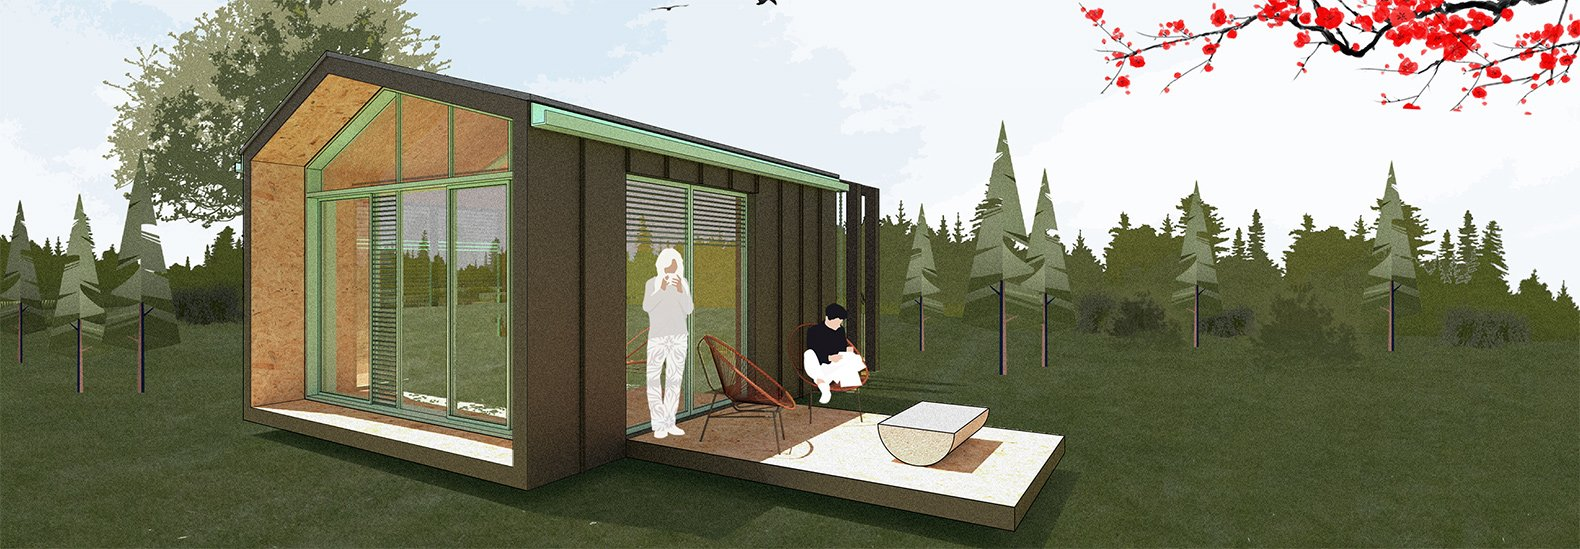 This micro-home is low-impact, convenient and versatile